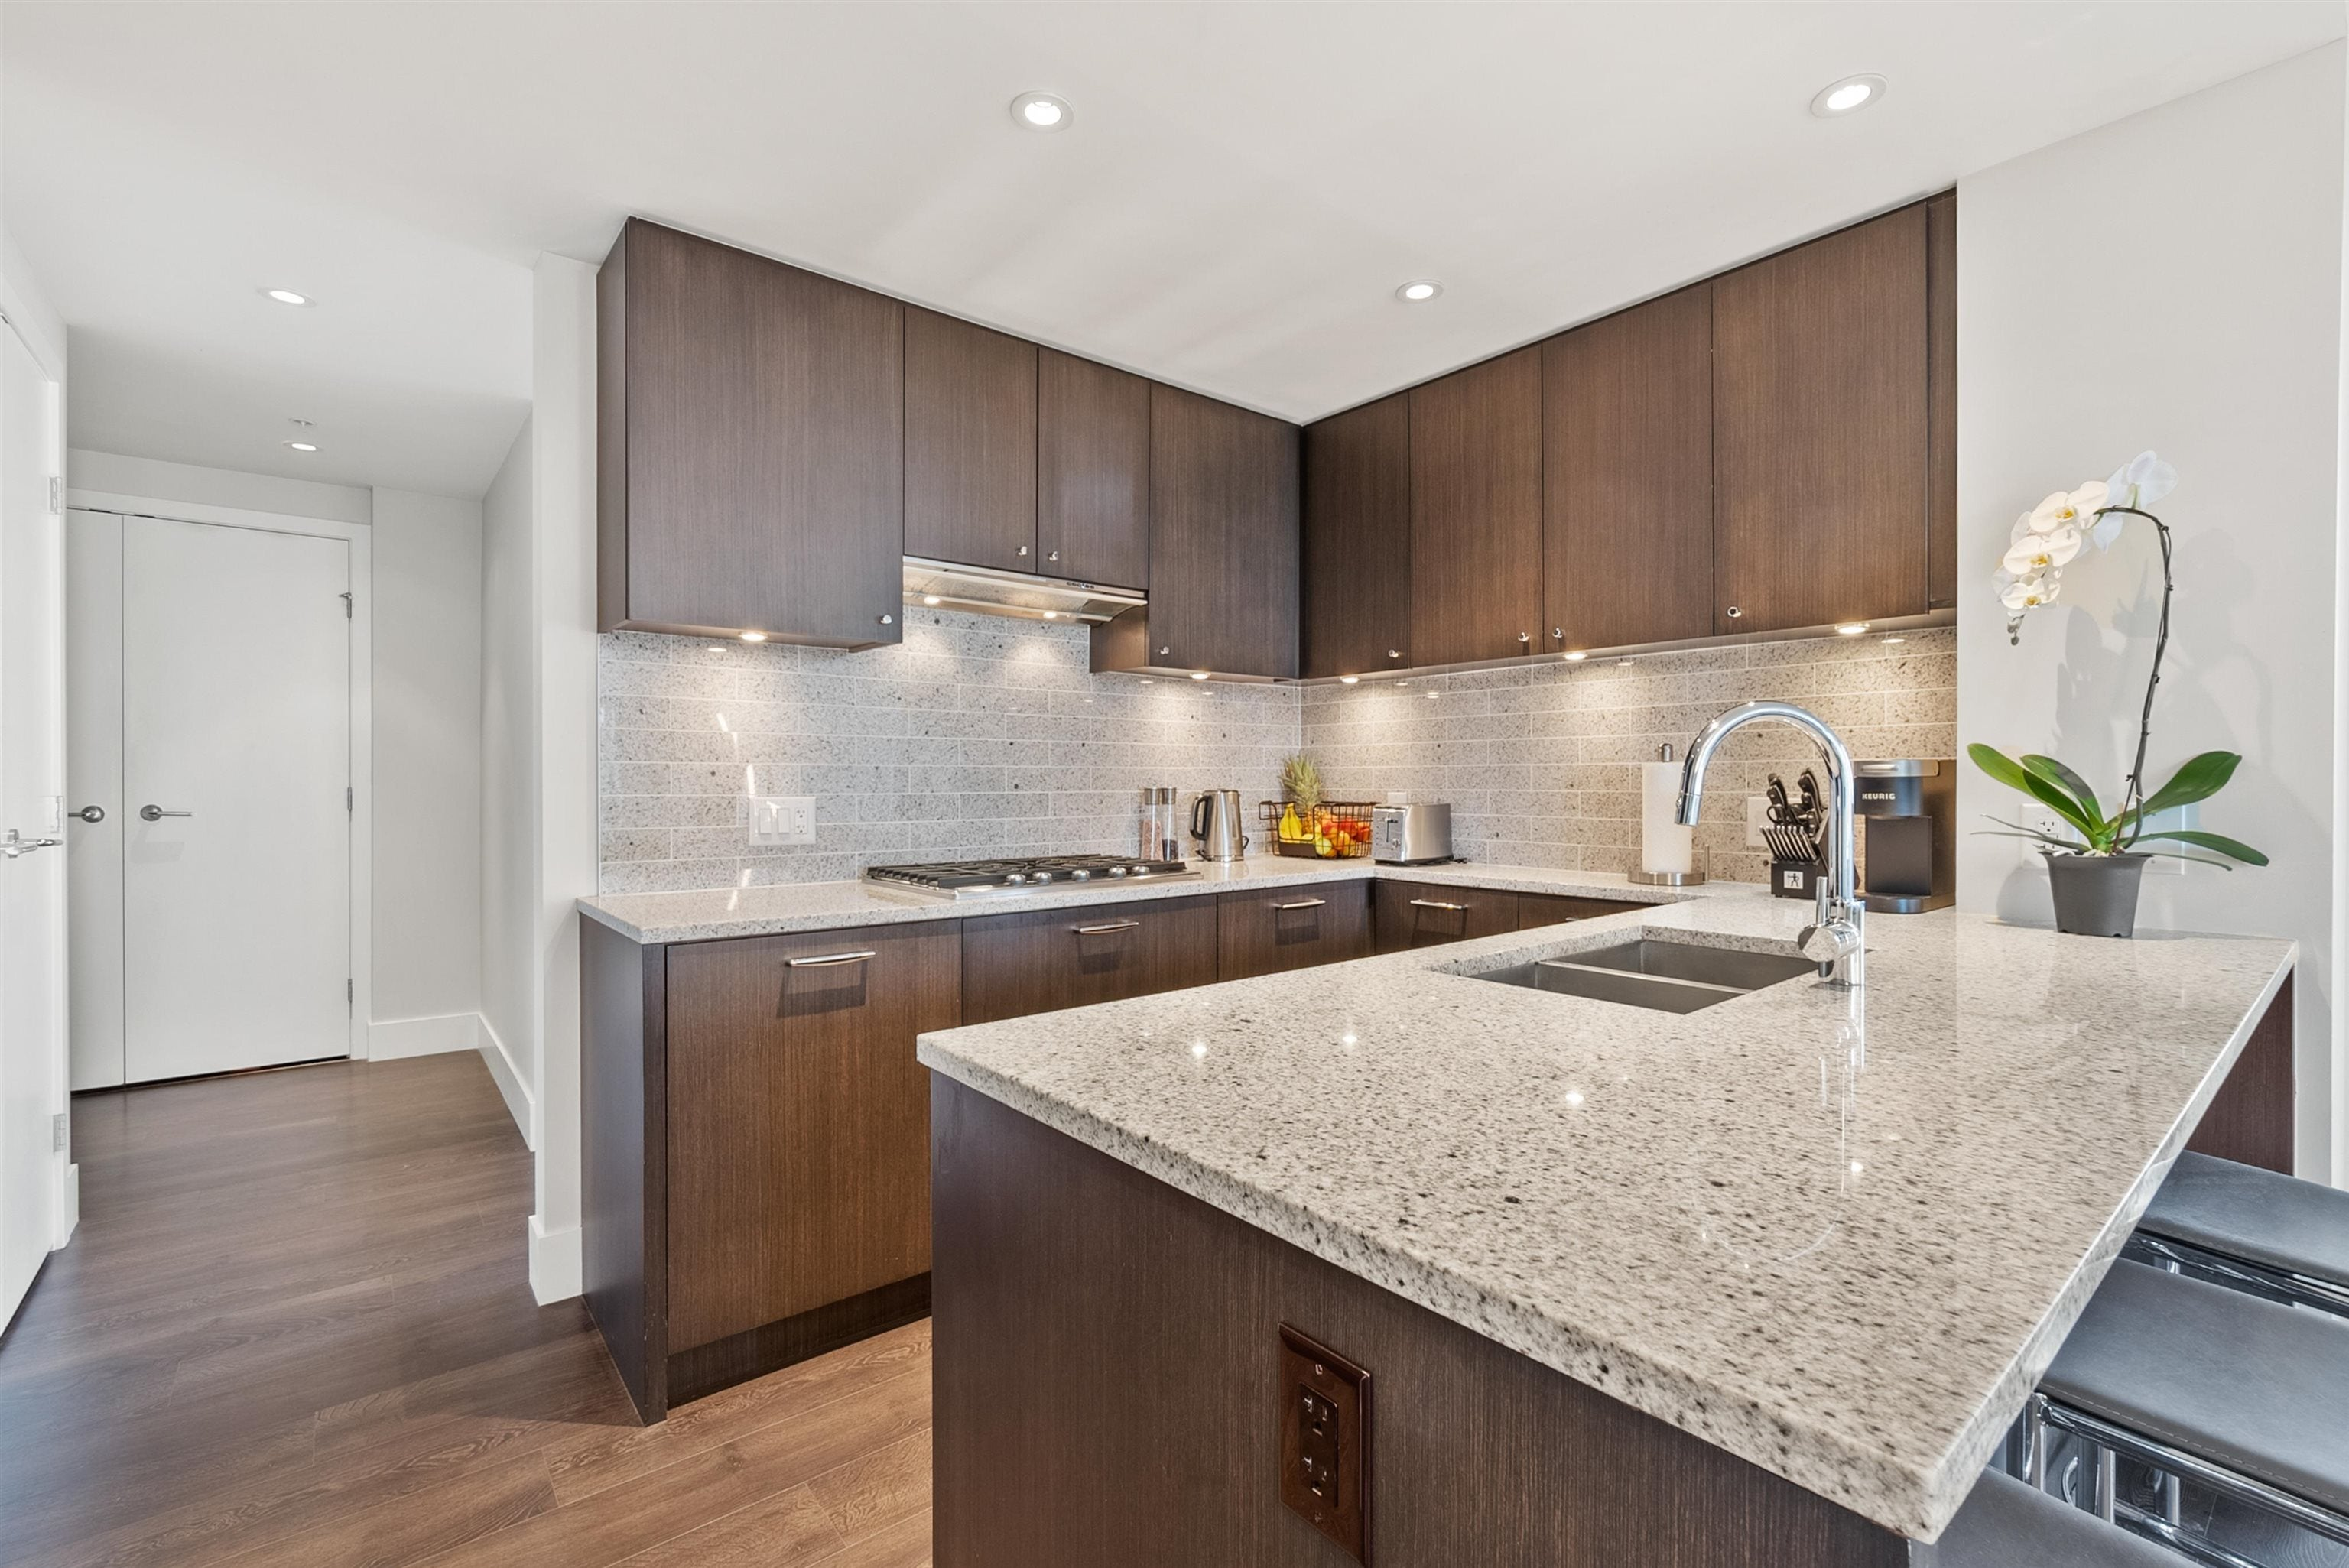 503 150 W 15TH STREET - Central Lonsdale Apartment/Condo for sale, 2 Bedrooms (R2624732) - #1